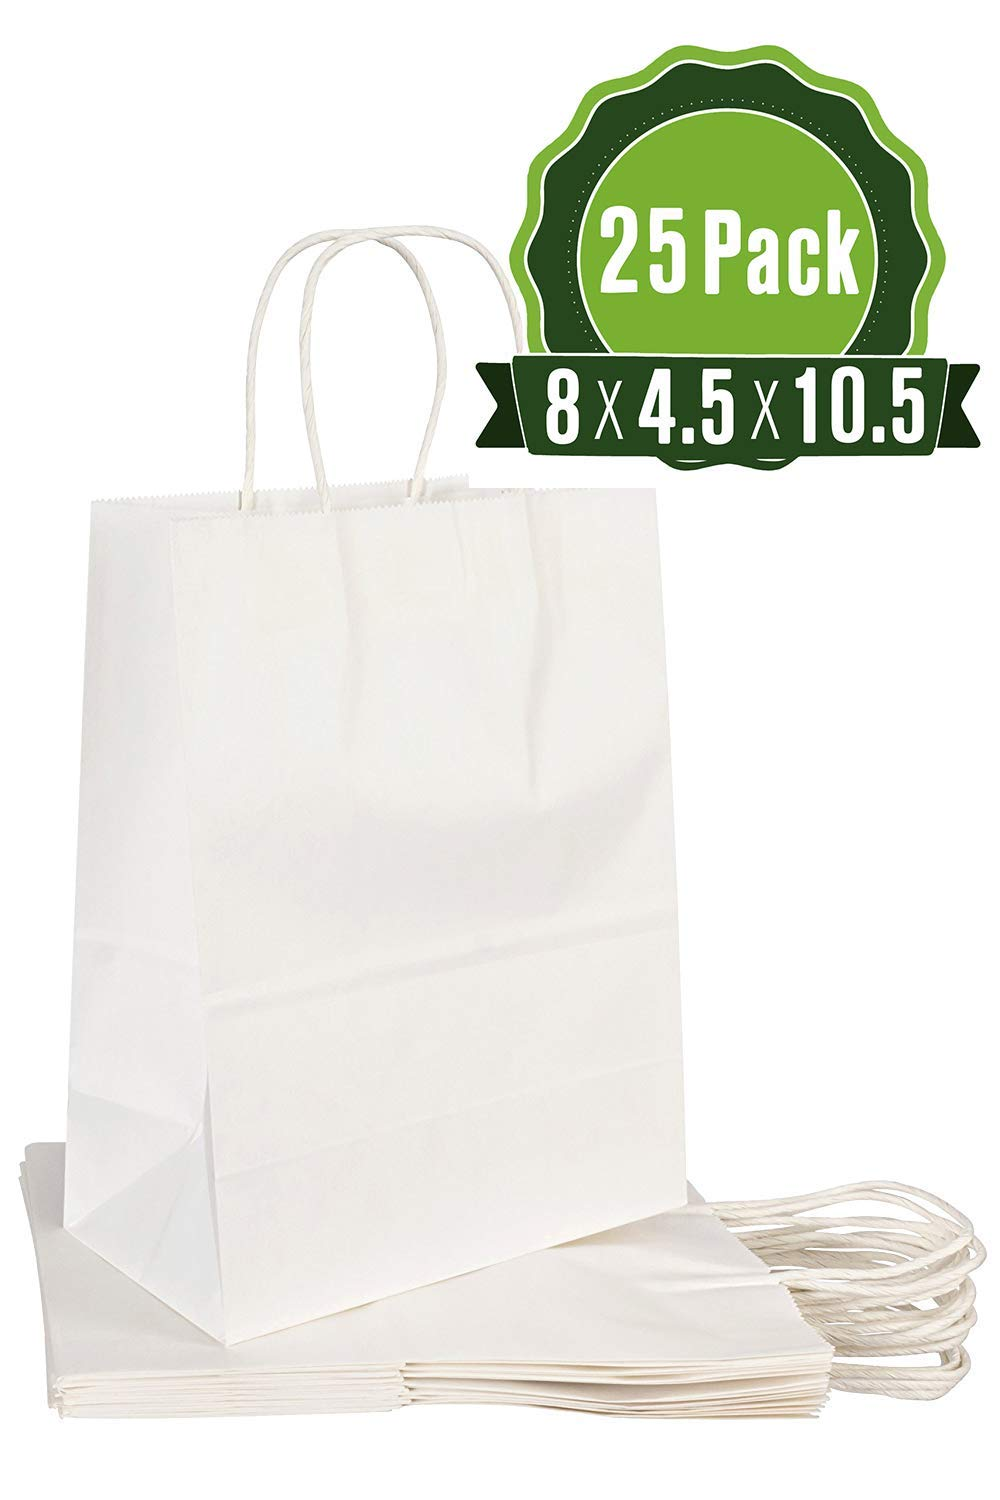 White Kraft Paper Gift Bags Bulk with Handles 8 X 4.5 X 10.5 [25Pc]. Ideal for Shopping, Packaging, Retail, Party, Craft, Gifts, Wedding, Recycled, Business, Goody and Merchandise Bag